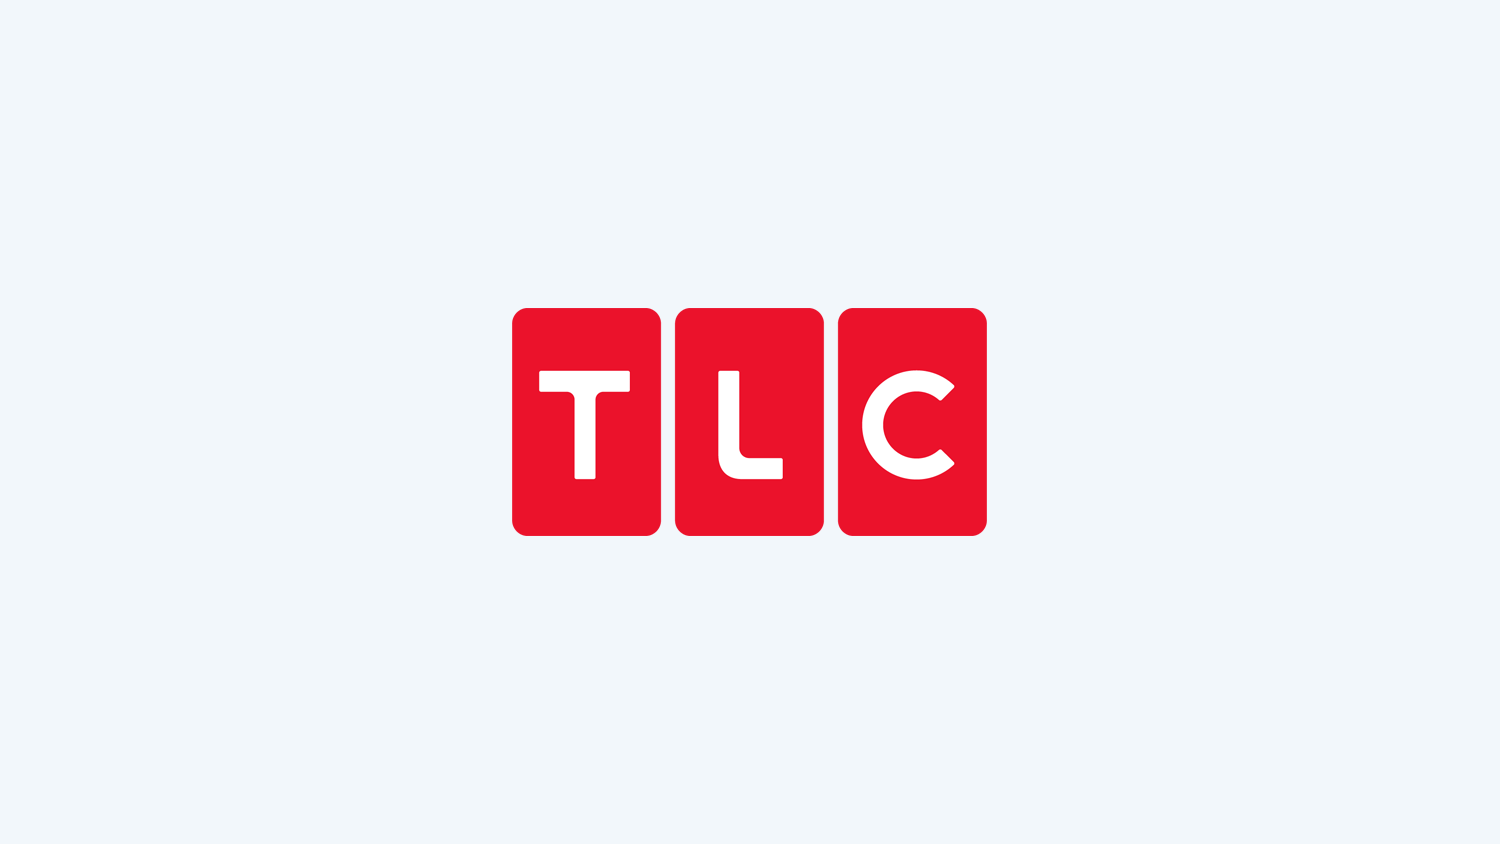 How To Activate TLC On Any Device? 1